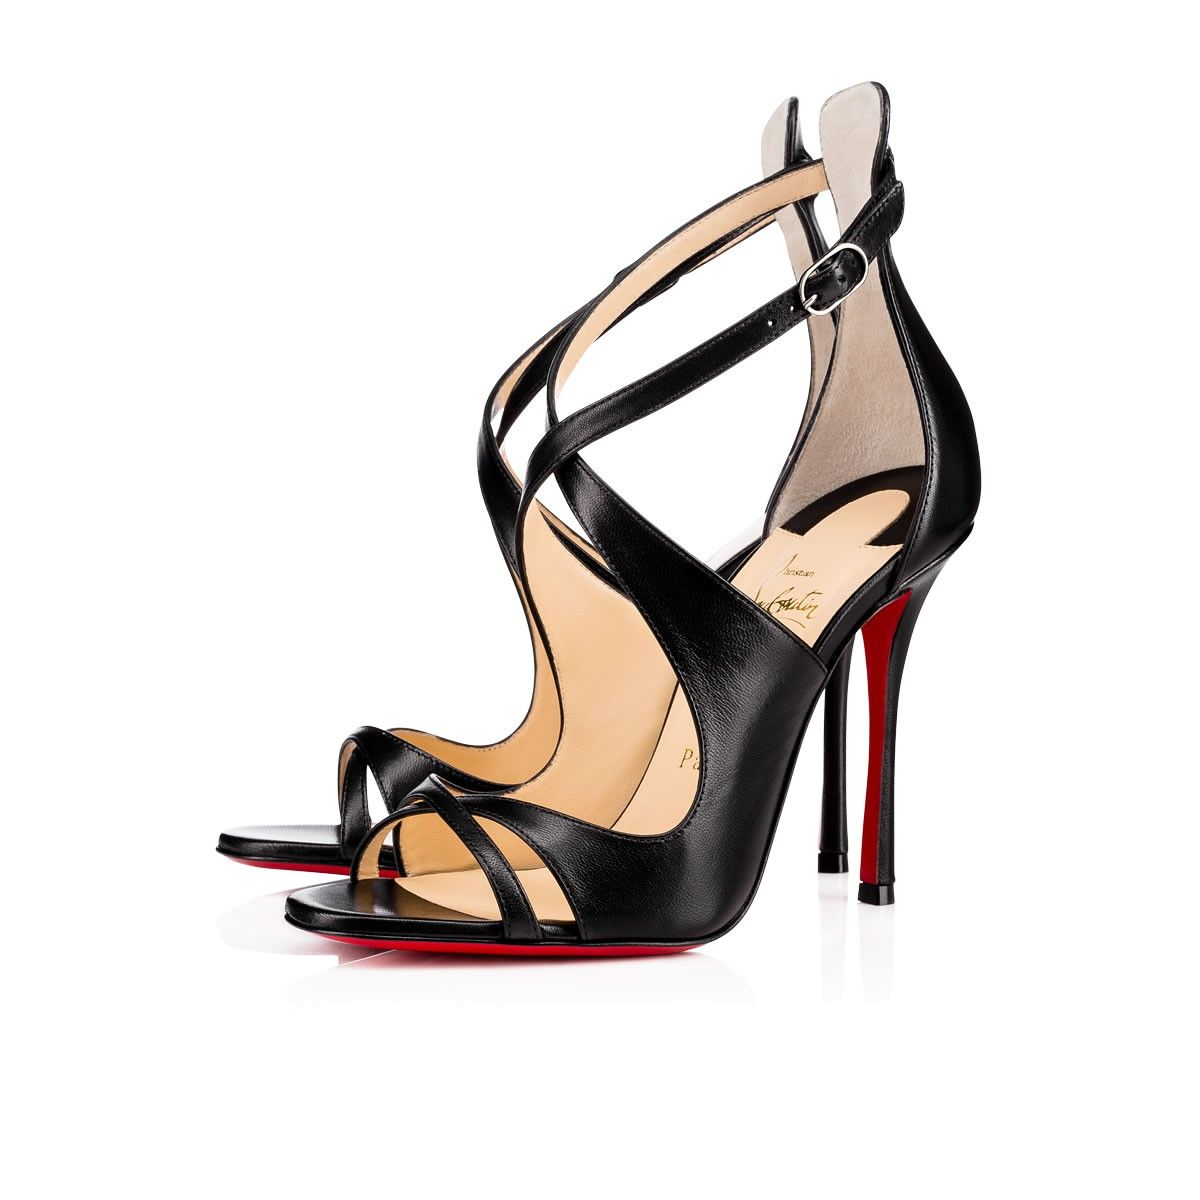 huge discount f8af4 8a97a CHRISTIAN LOUBOUTIN Malefissima 100Mm Black Leather ...